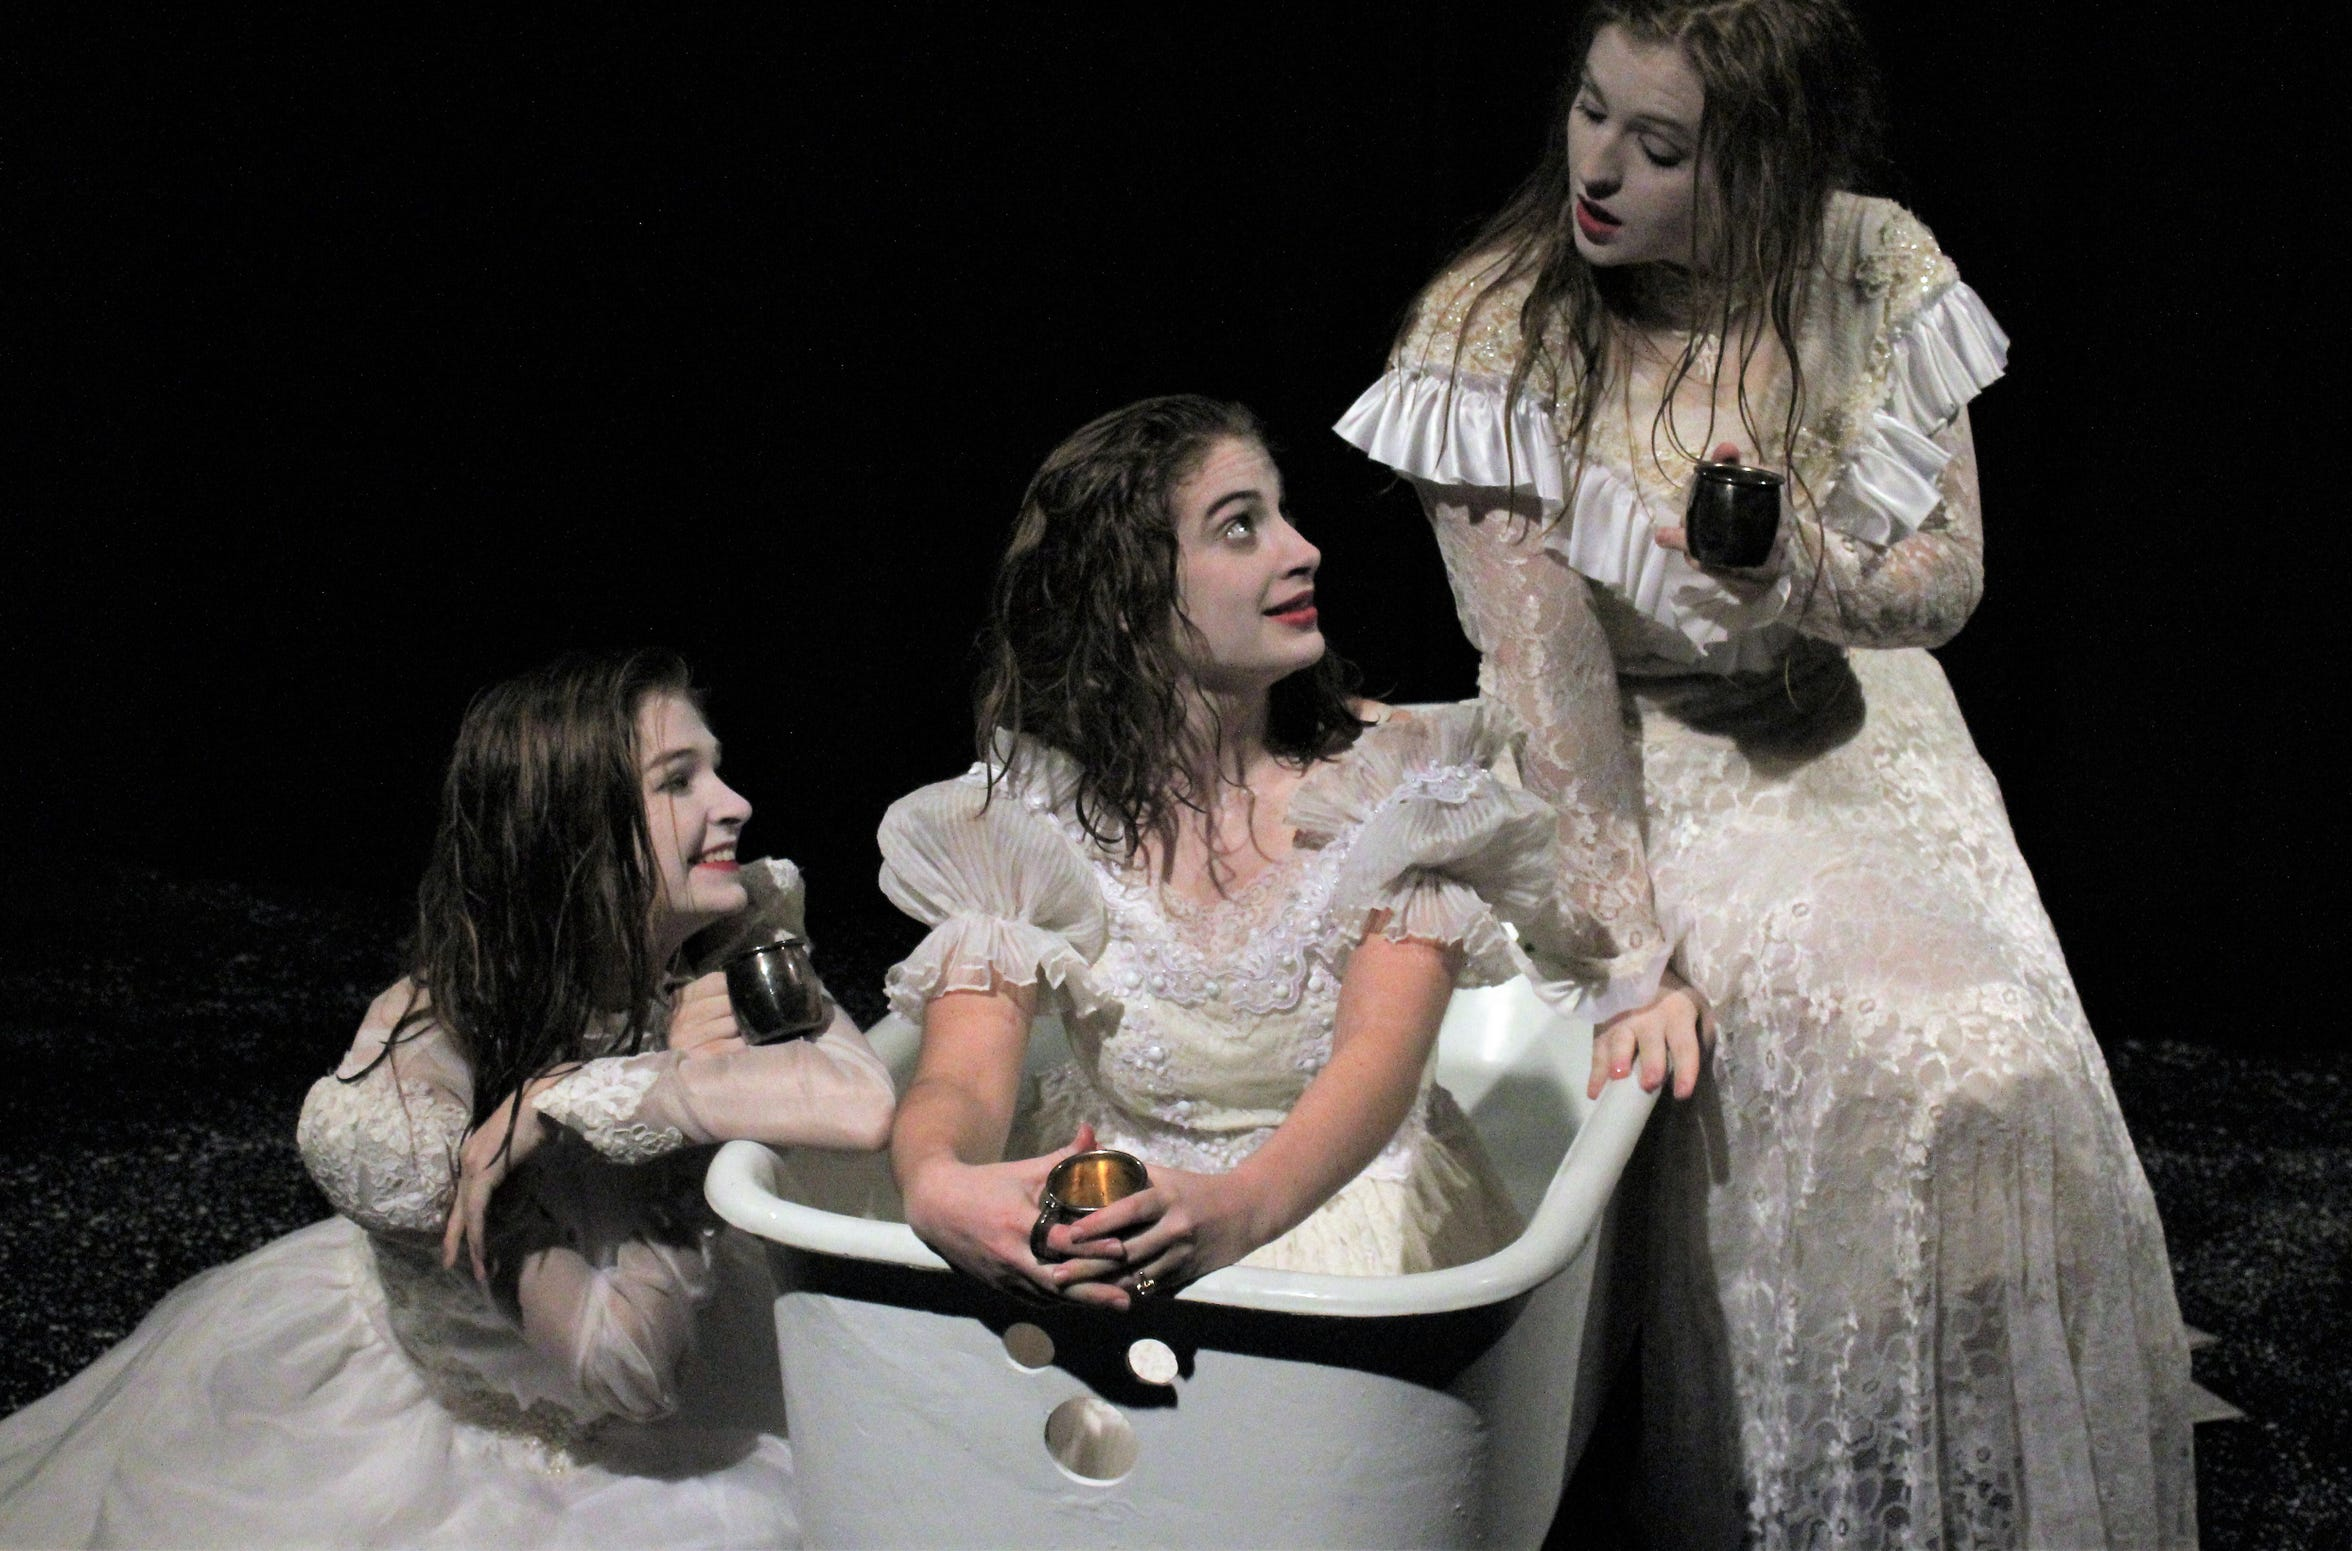 From left, Cassidy Davis, Bethany Soder and Bailee Barrett toast the good times in their lives when George Joseph Smith wooed them into marriage.